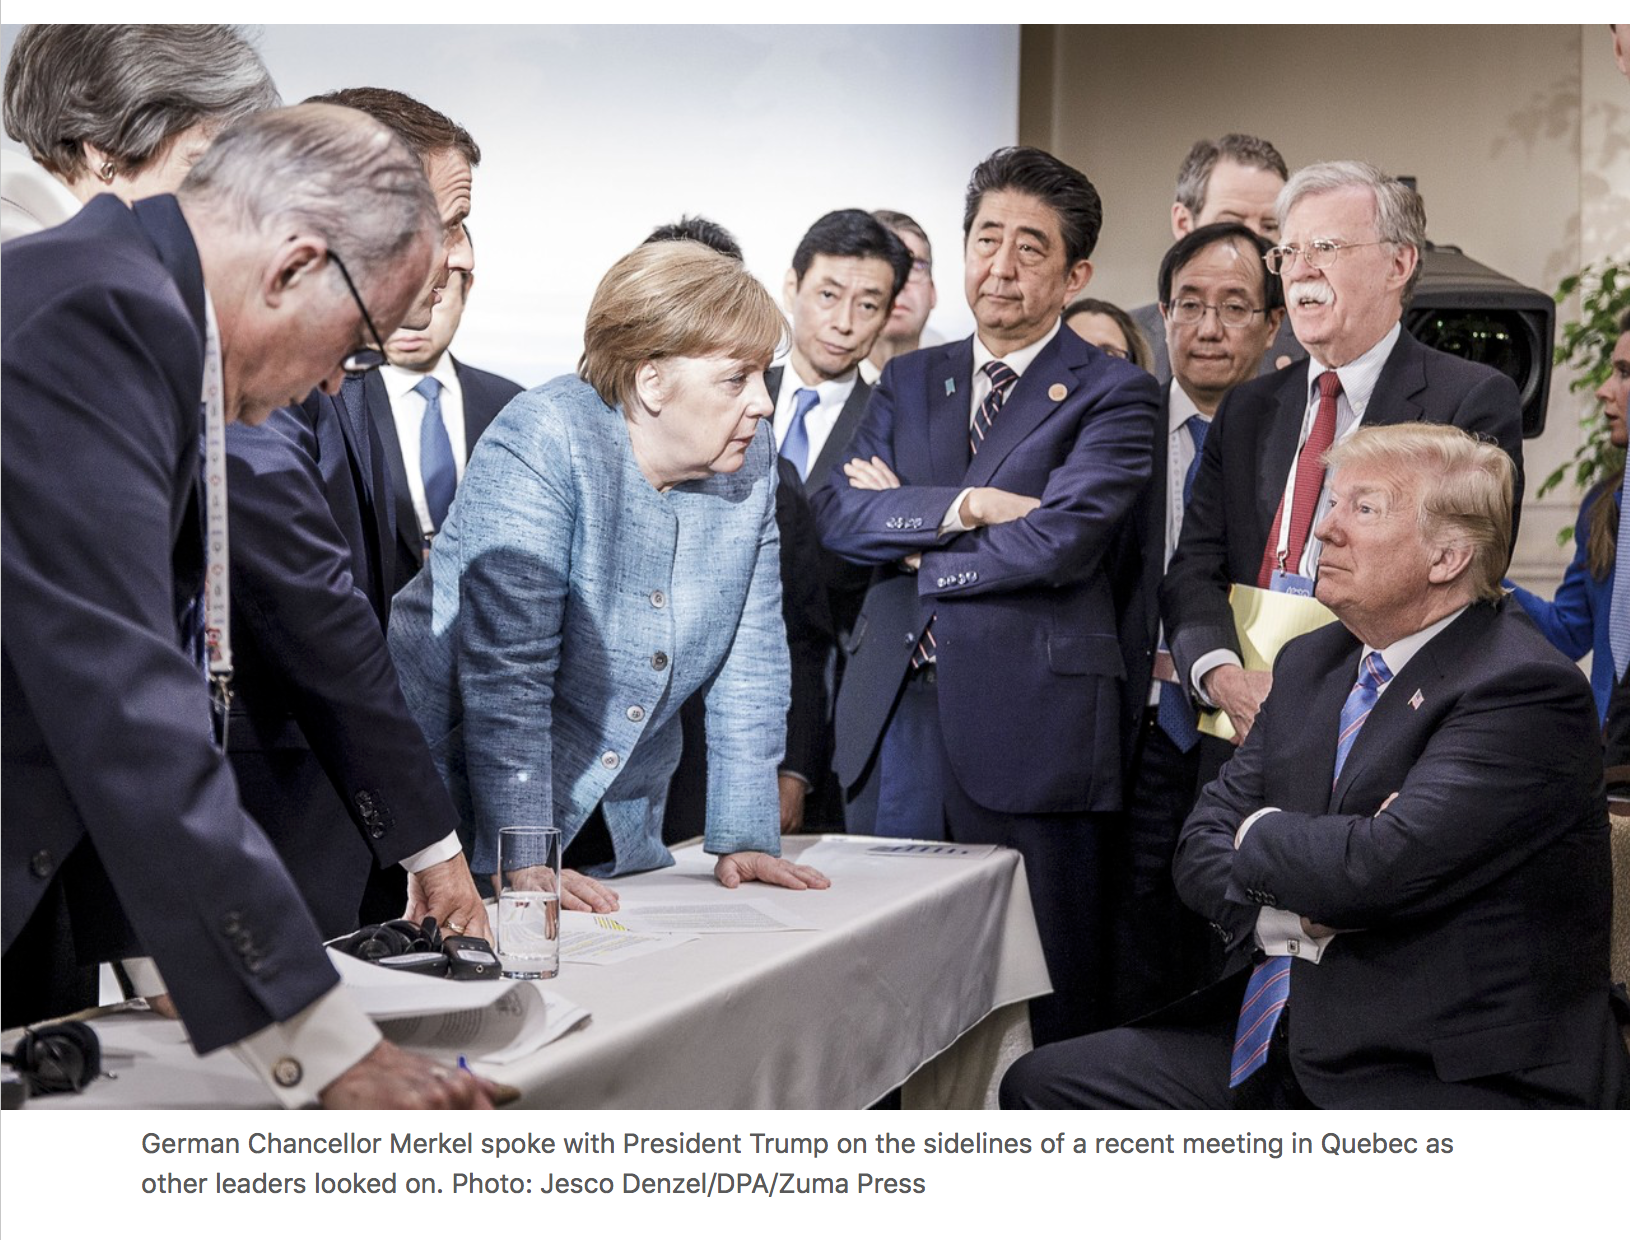 G7 Kanada 2018: Wall Street Journal 8. júlí 2018